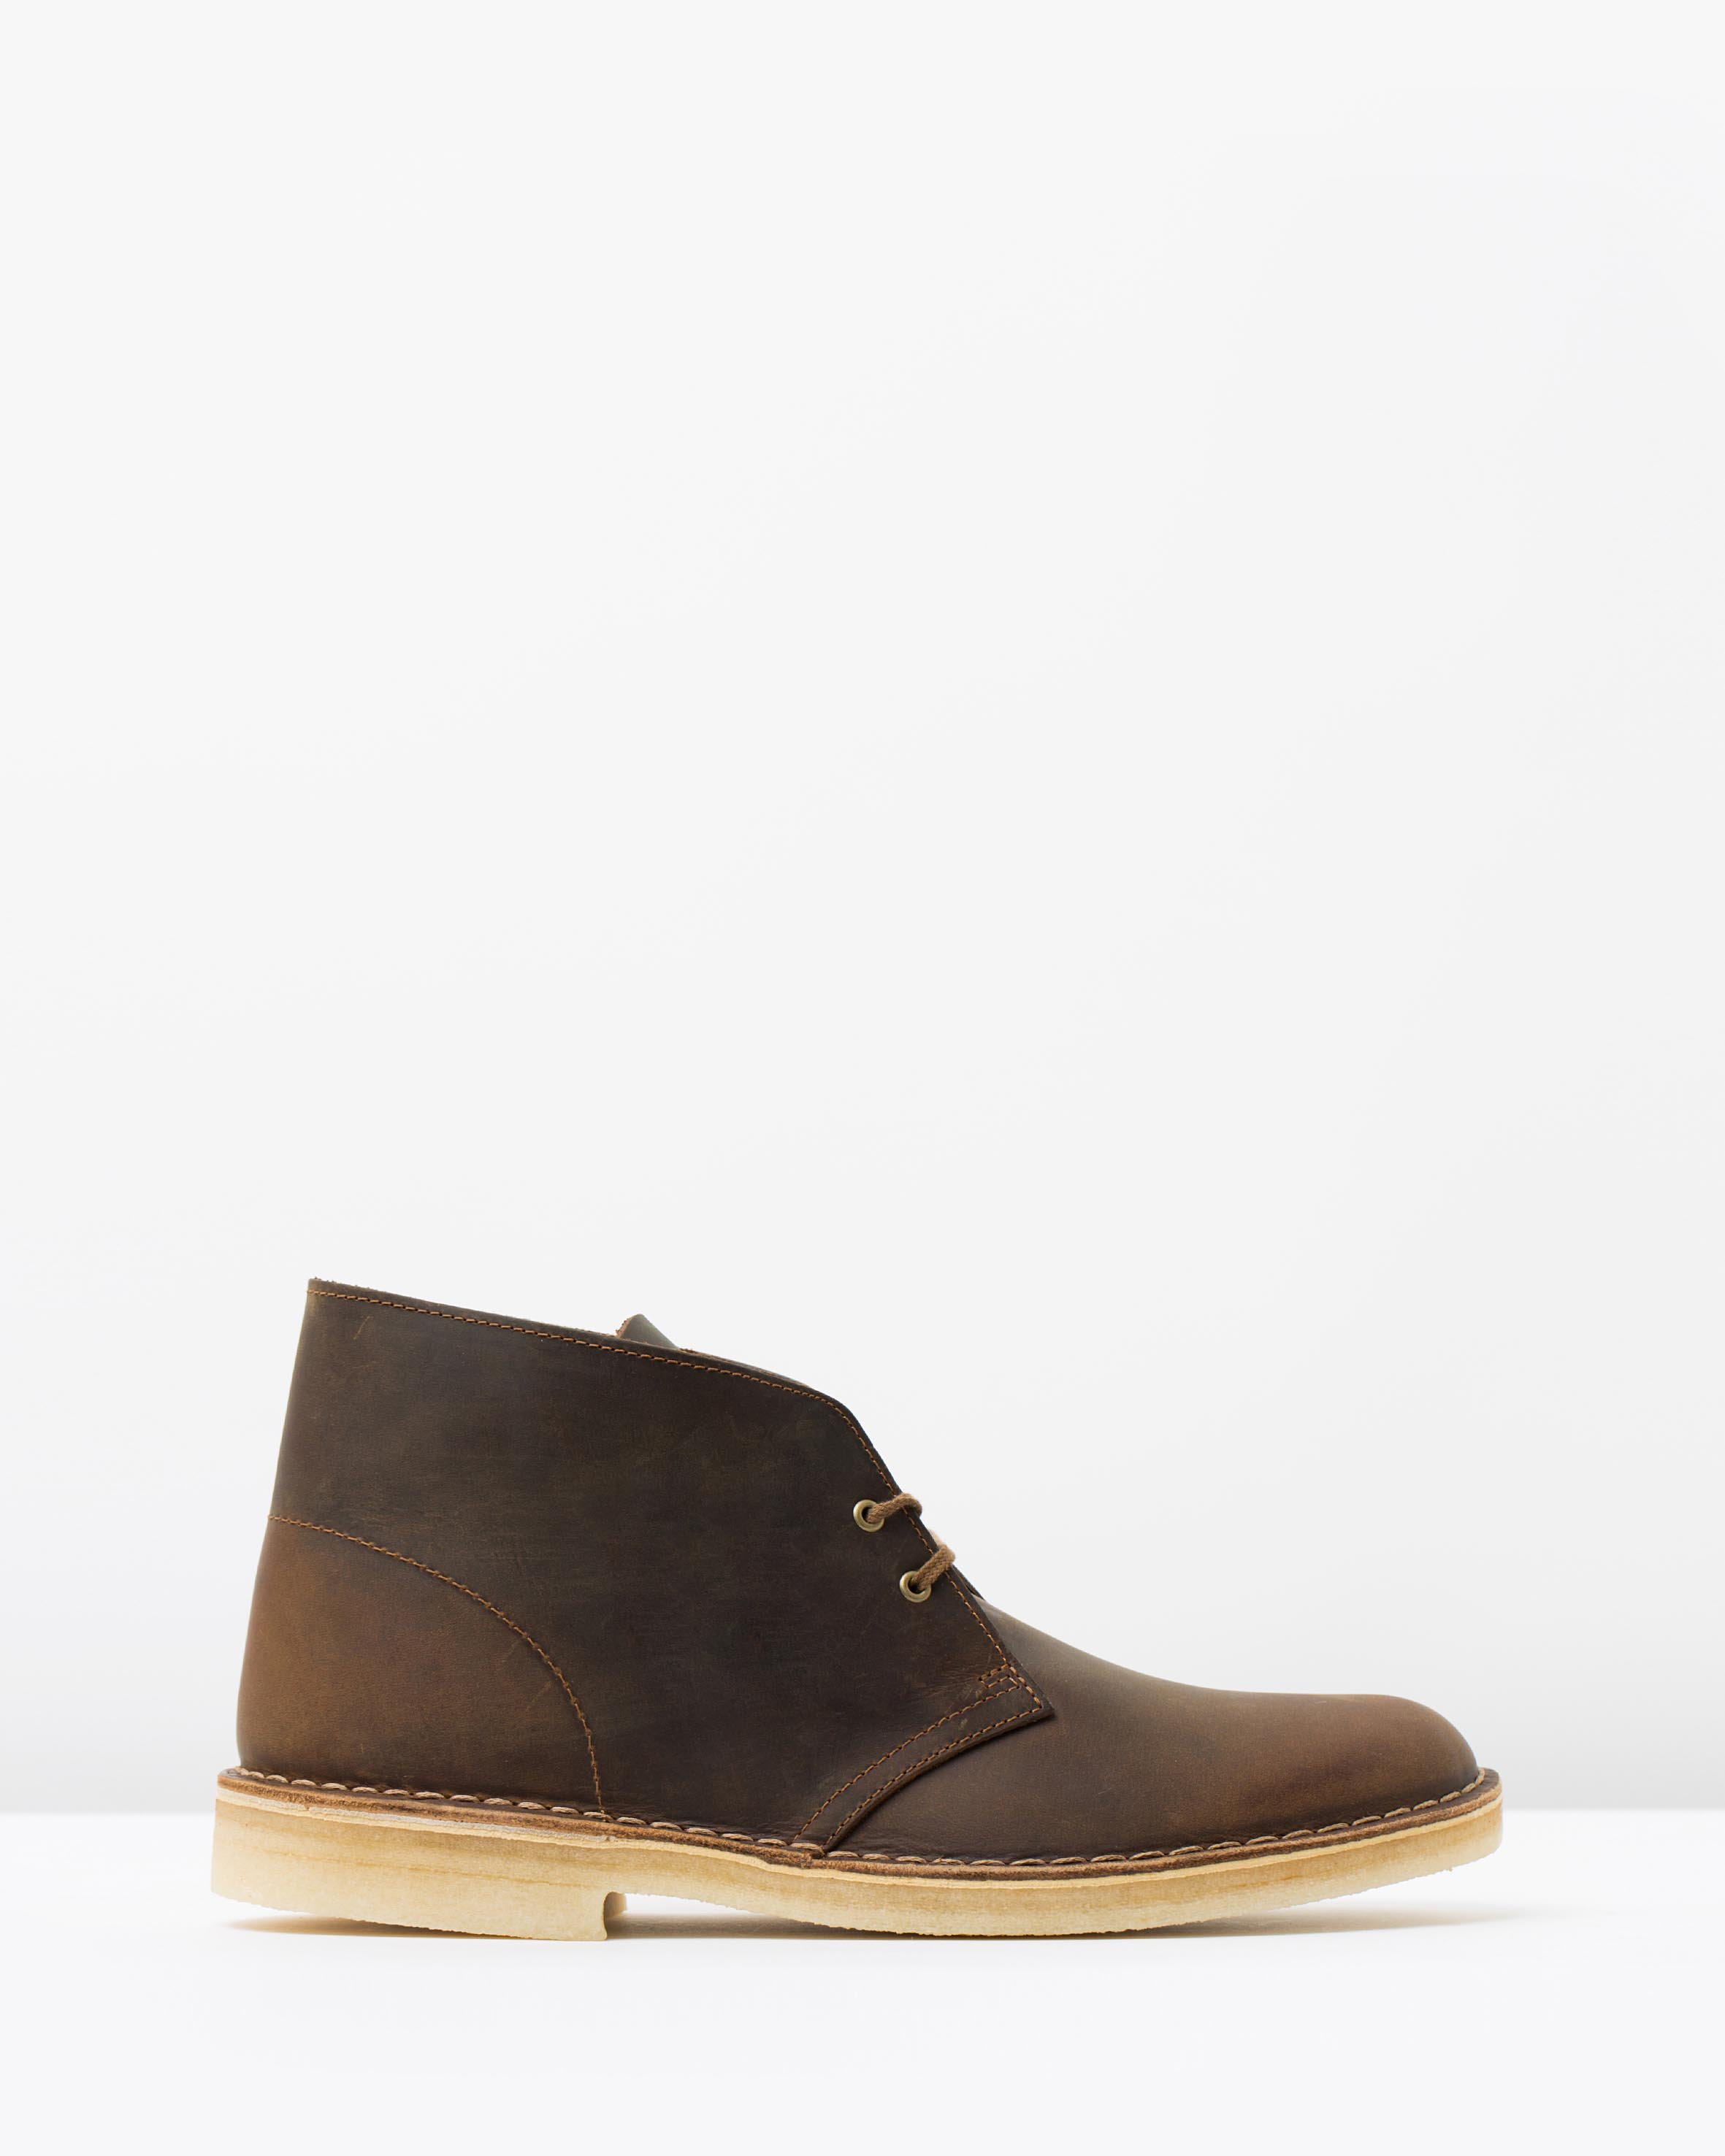 Shoes online for women Clarks shoes online sale